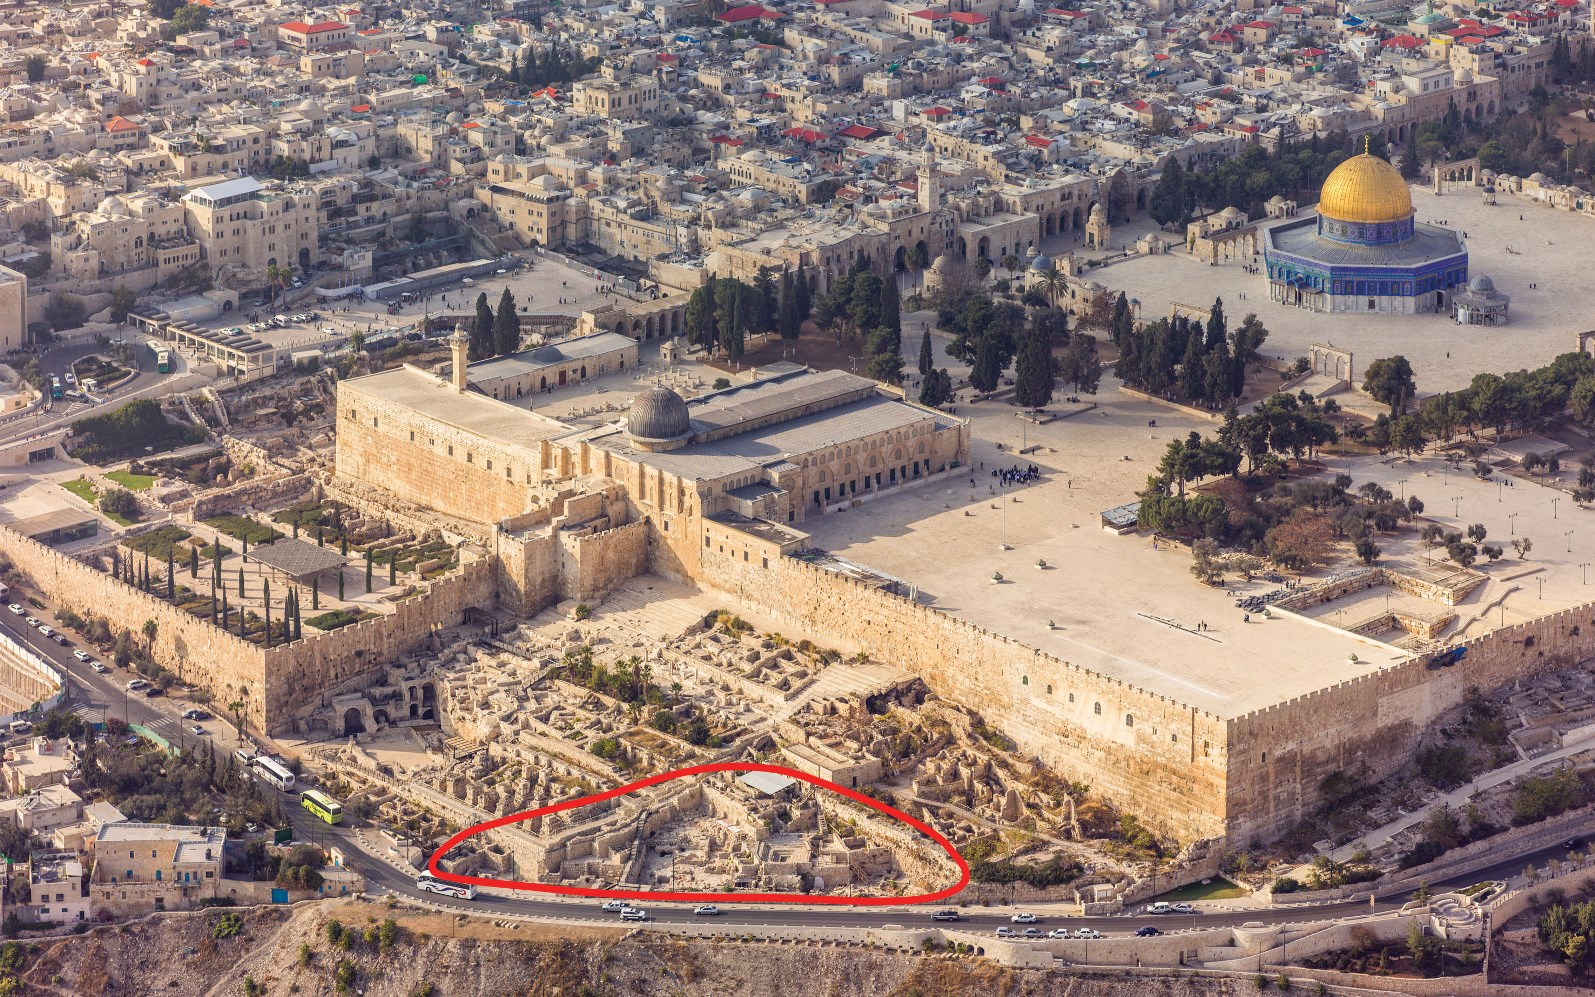 The Ophel excavations at the foot of the southern wall of the Temple Mount in Jerusalem are conducted by the Hebrew University of Jerusalem's Institute of Archaeology. Photo courtesy of Andrew Shiva